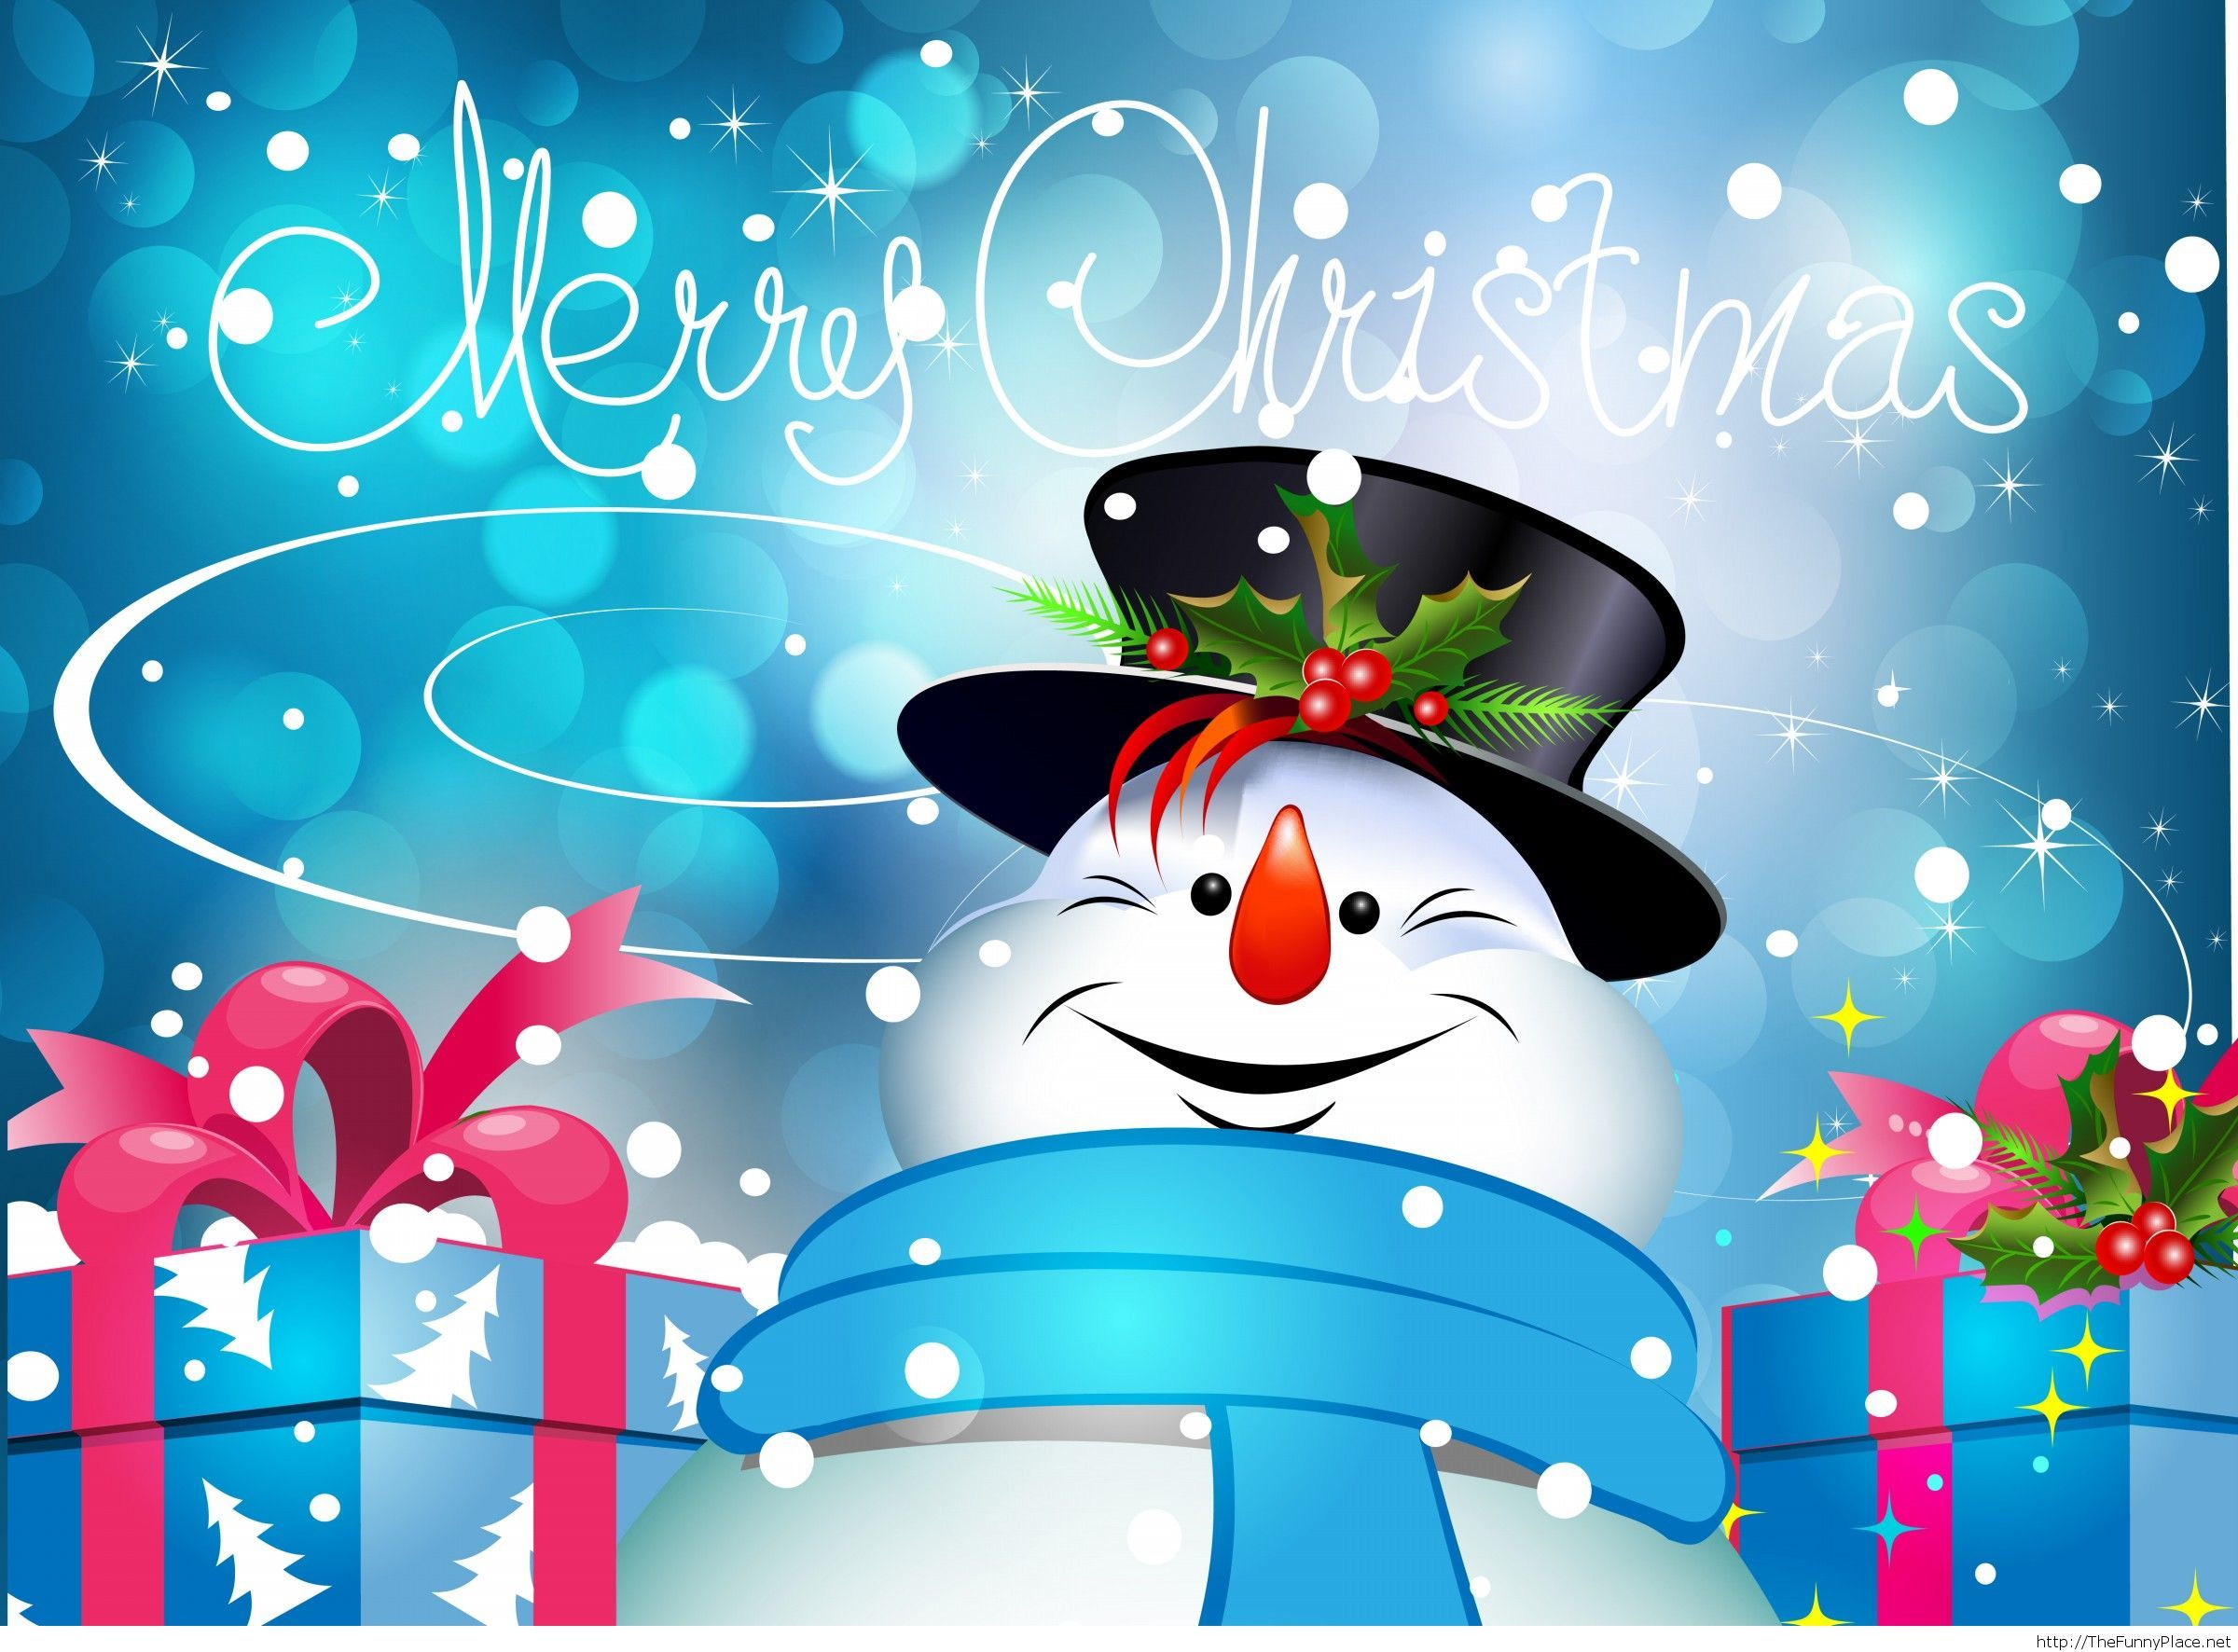 Merry Christmas Images Free.Free Merry Christmas Card Thefunnyplace